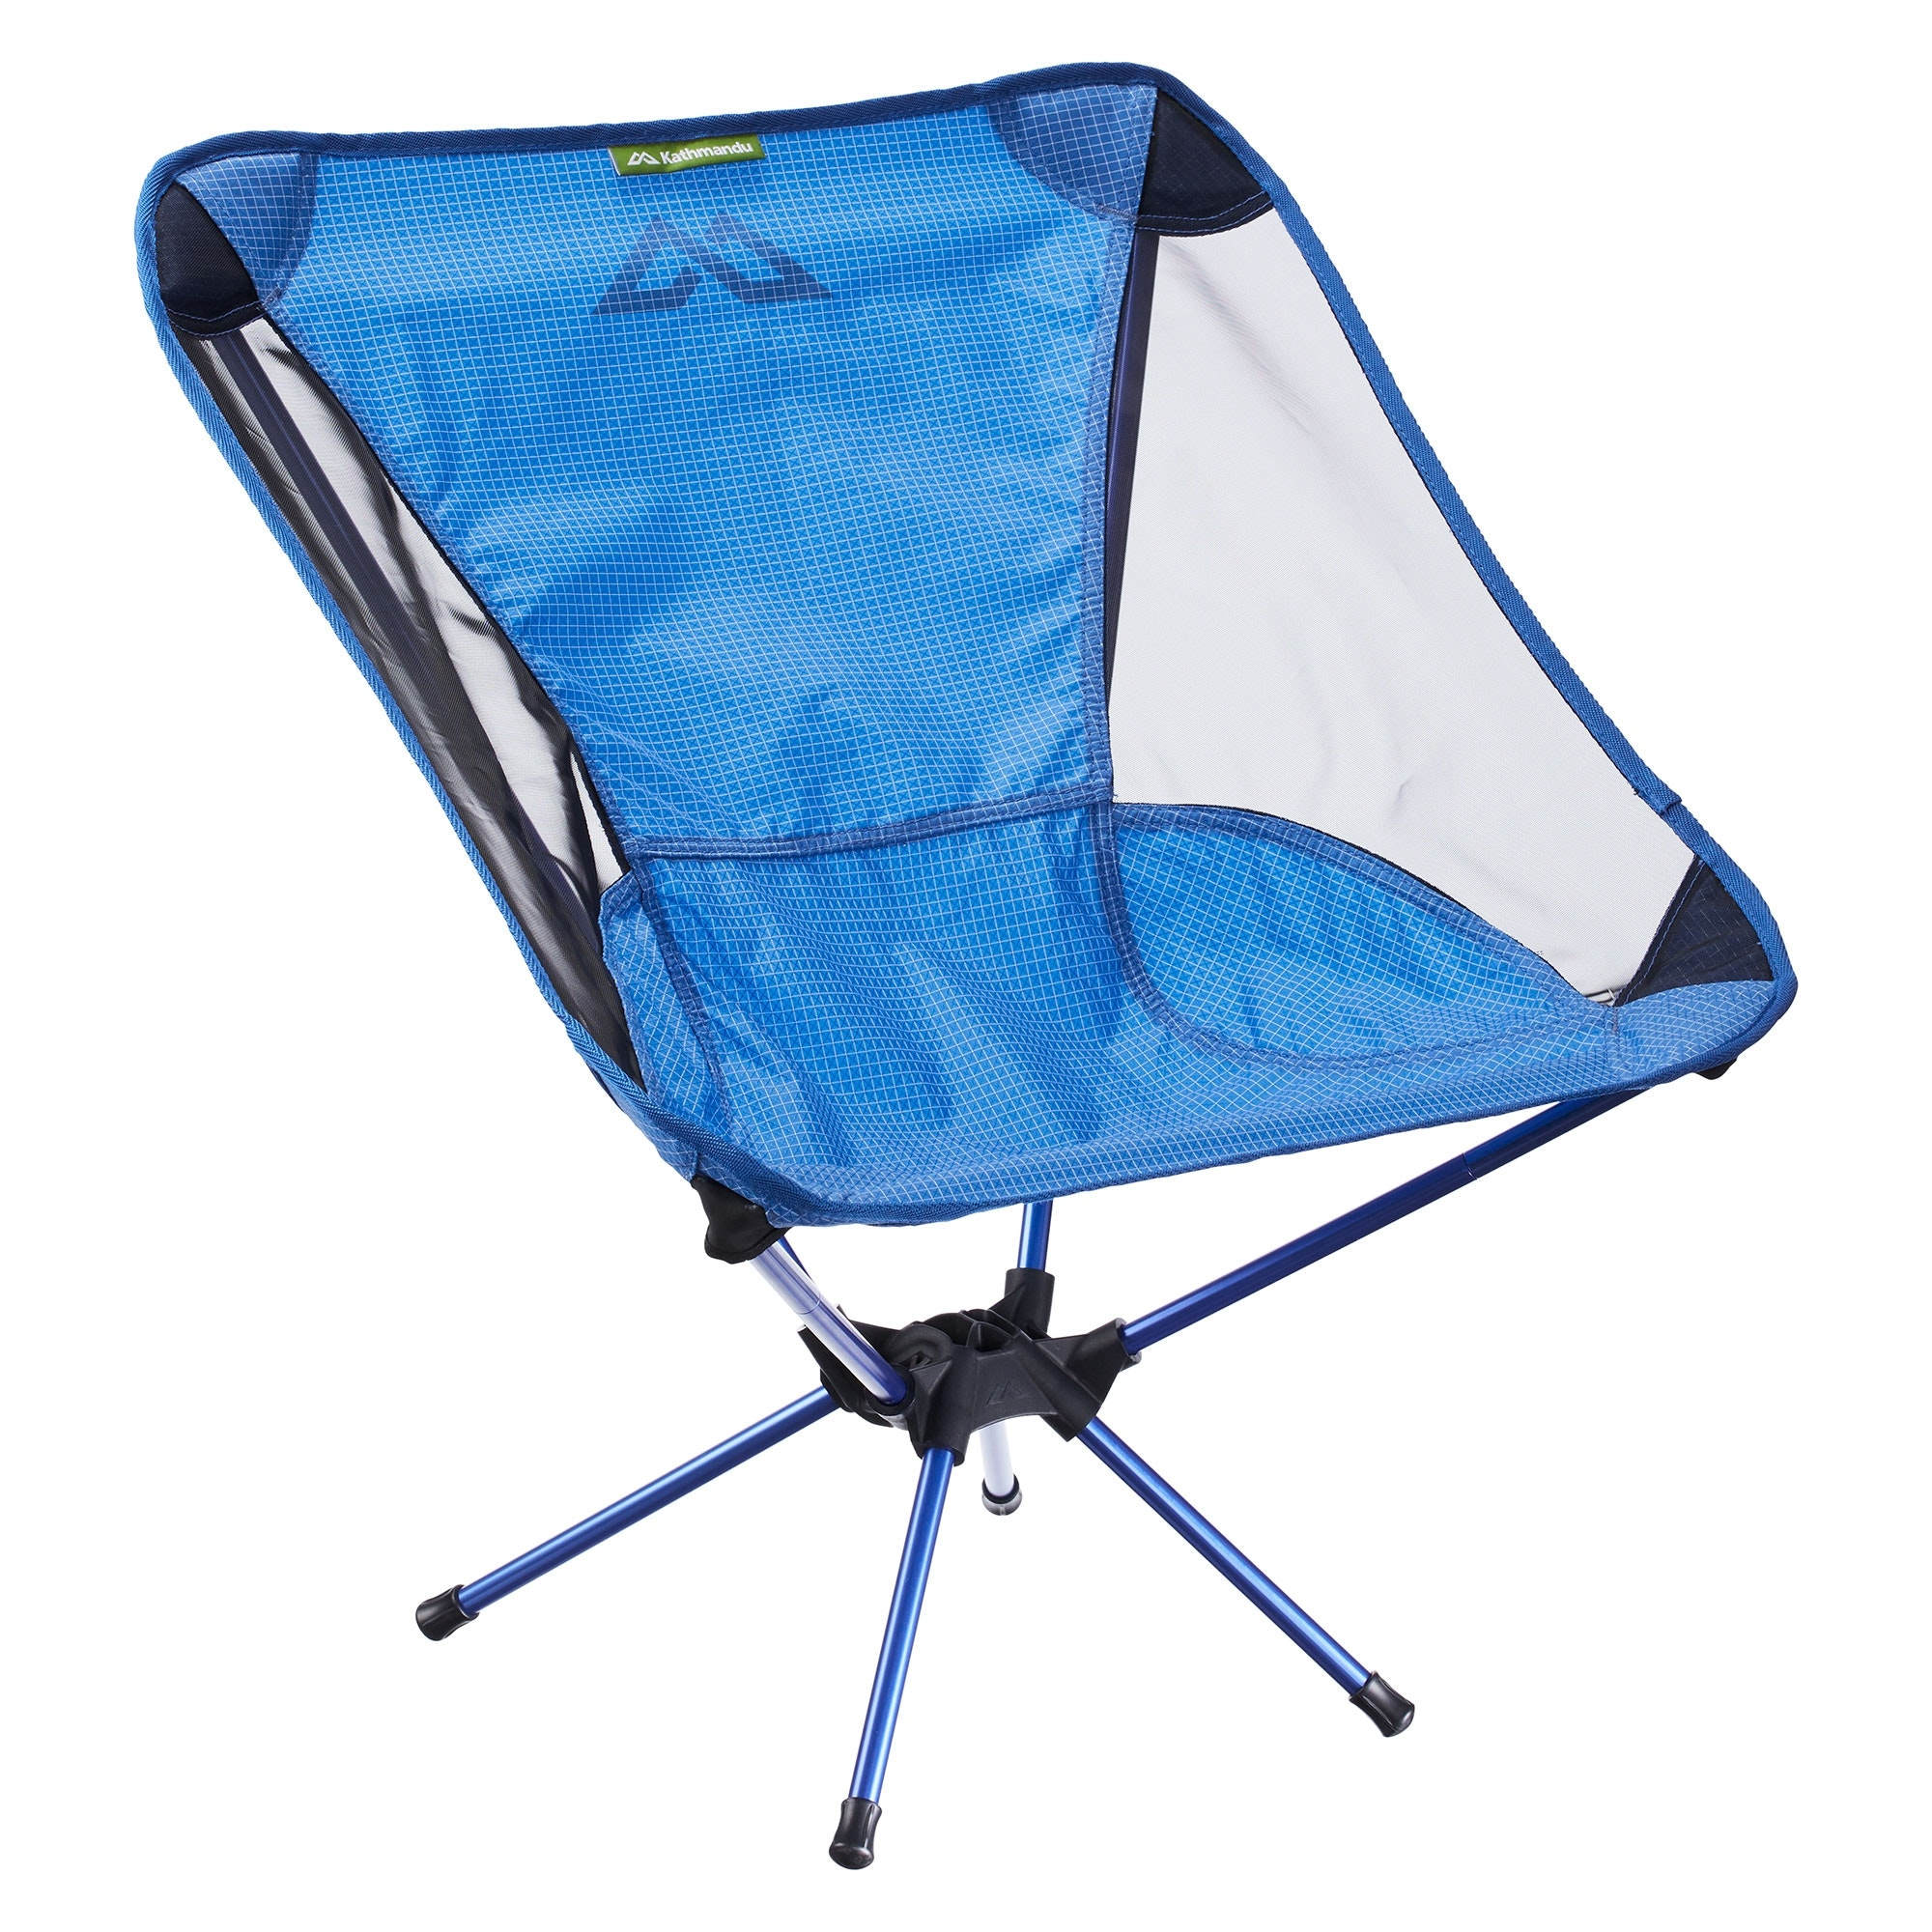 Folding Sleeping Chair Camping Chairs Outdoor Folding Lightweight Picnic Chairs Au